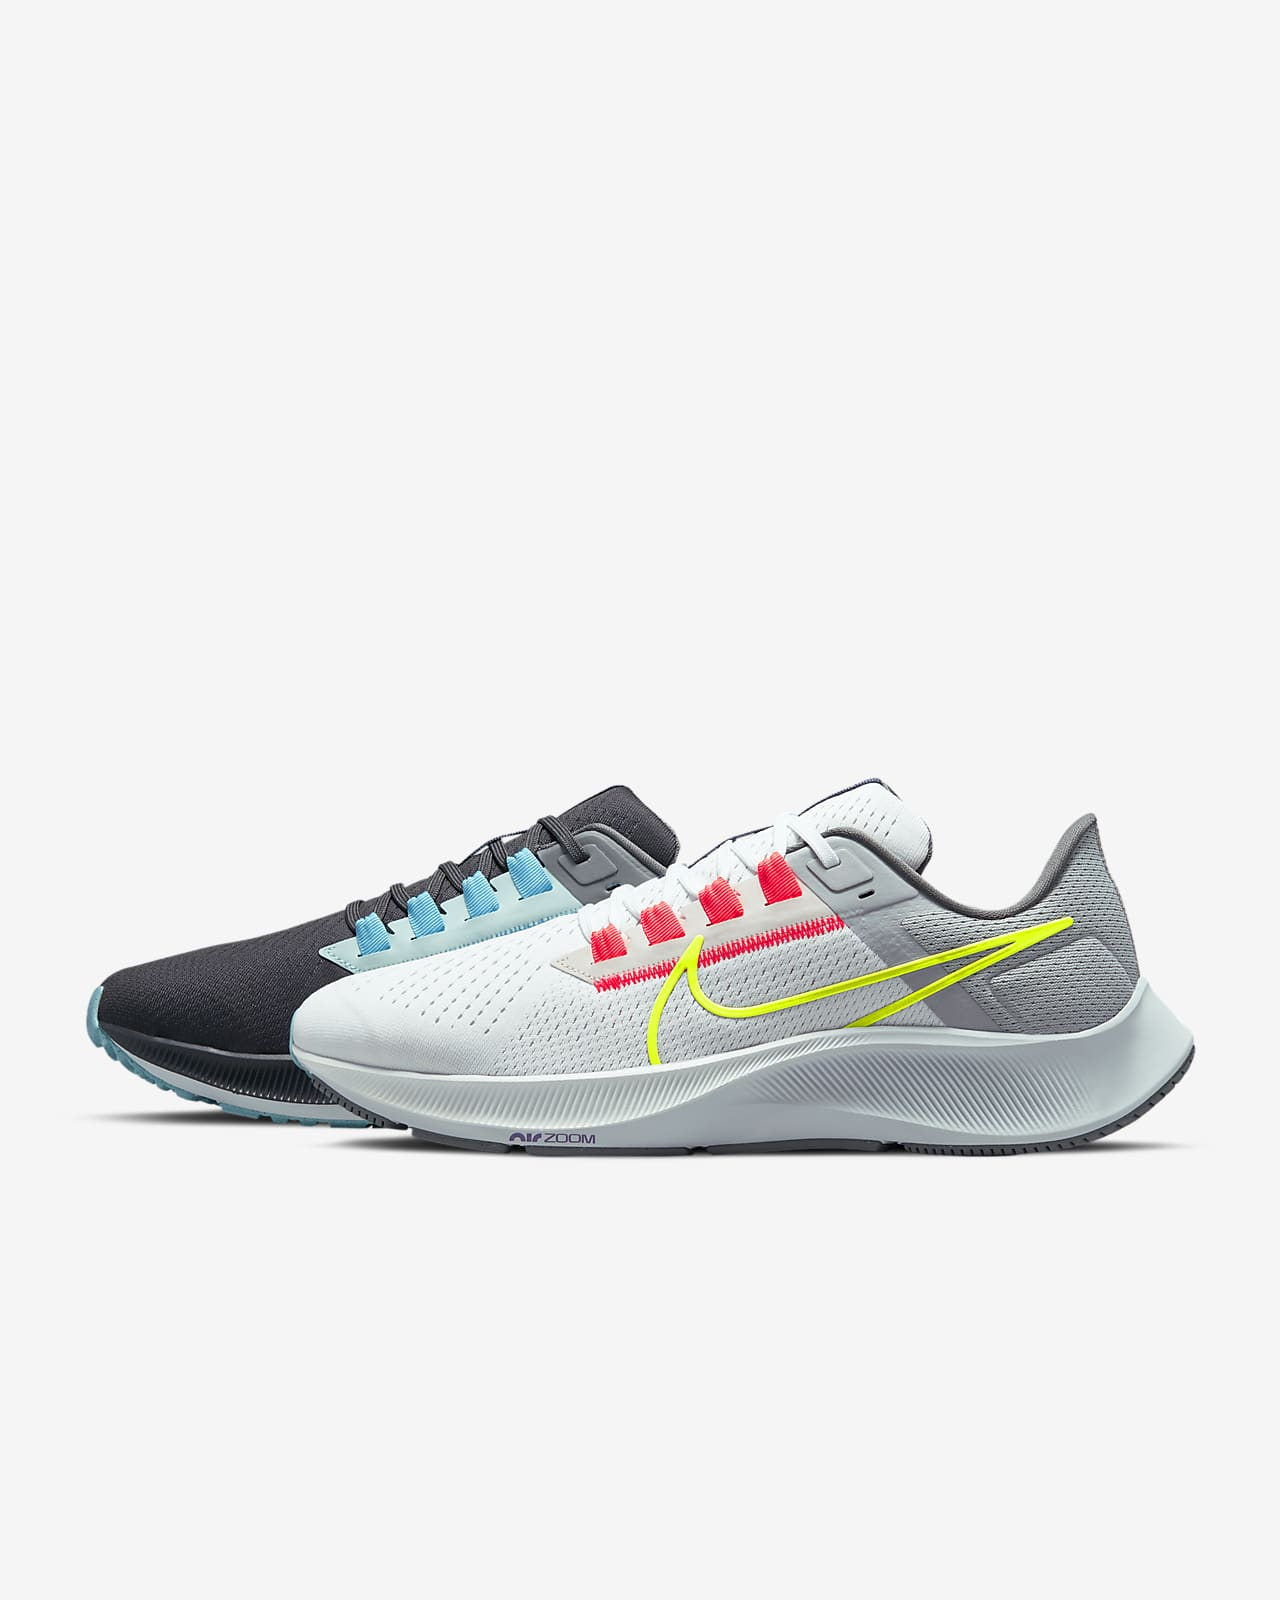 Chaussures de running Nike Air Zoom Pegasus 38 Limited Edition pour Homme